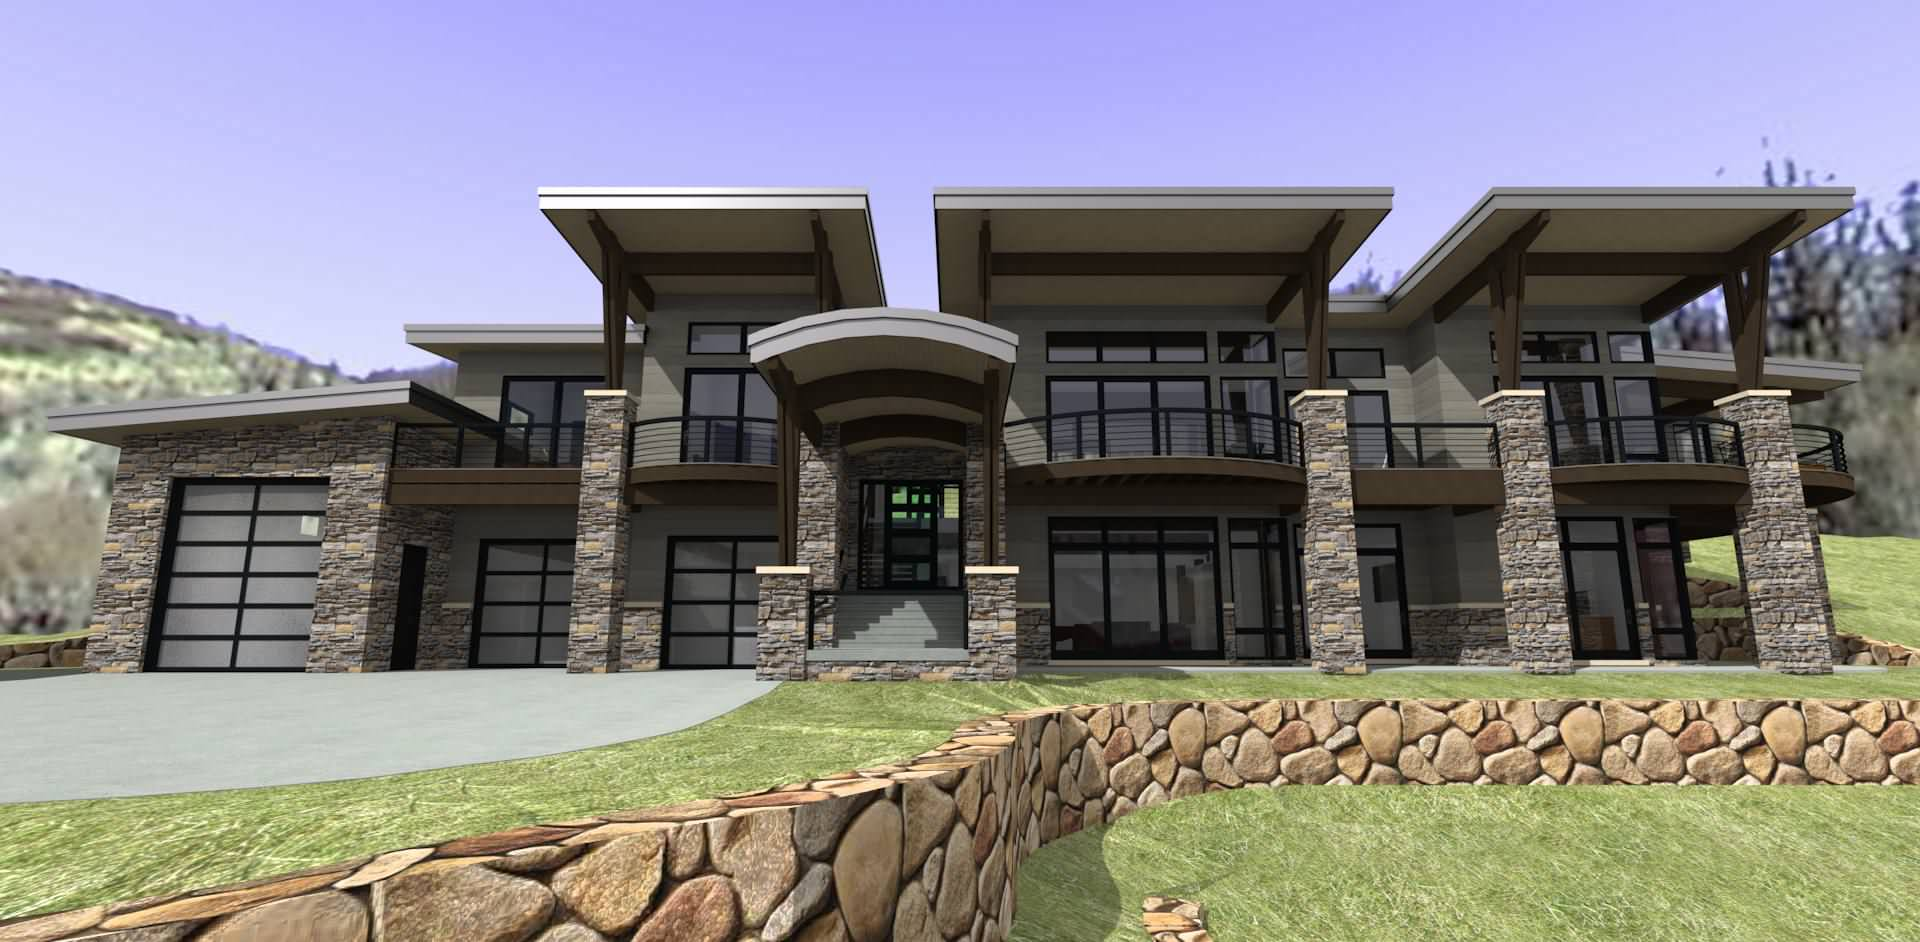 Midway Residence 2020